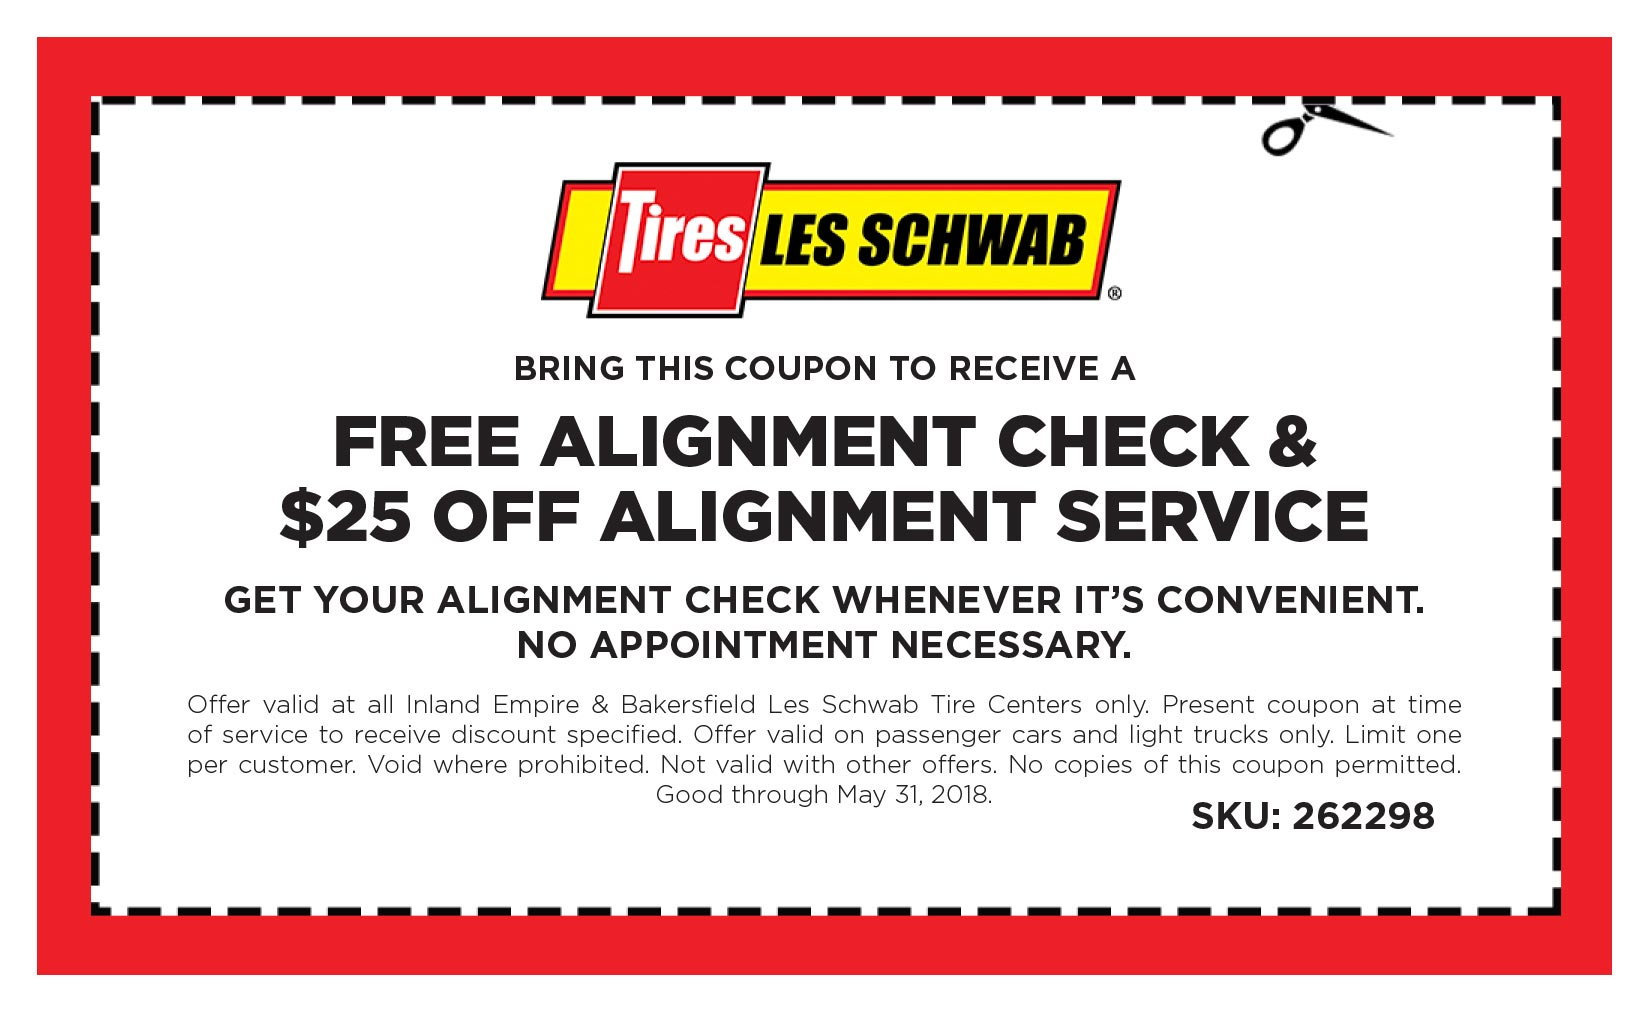 Alignment Offer Coupon